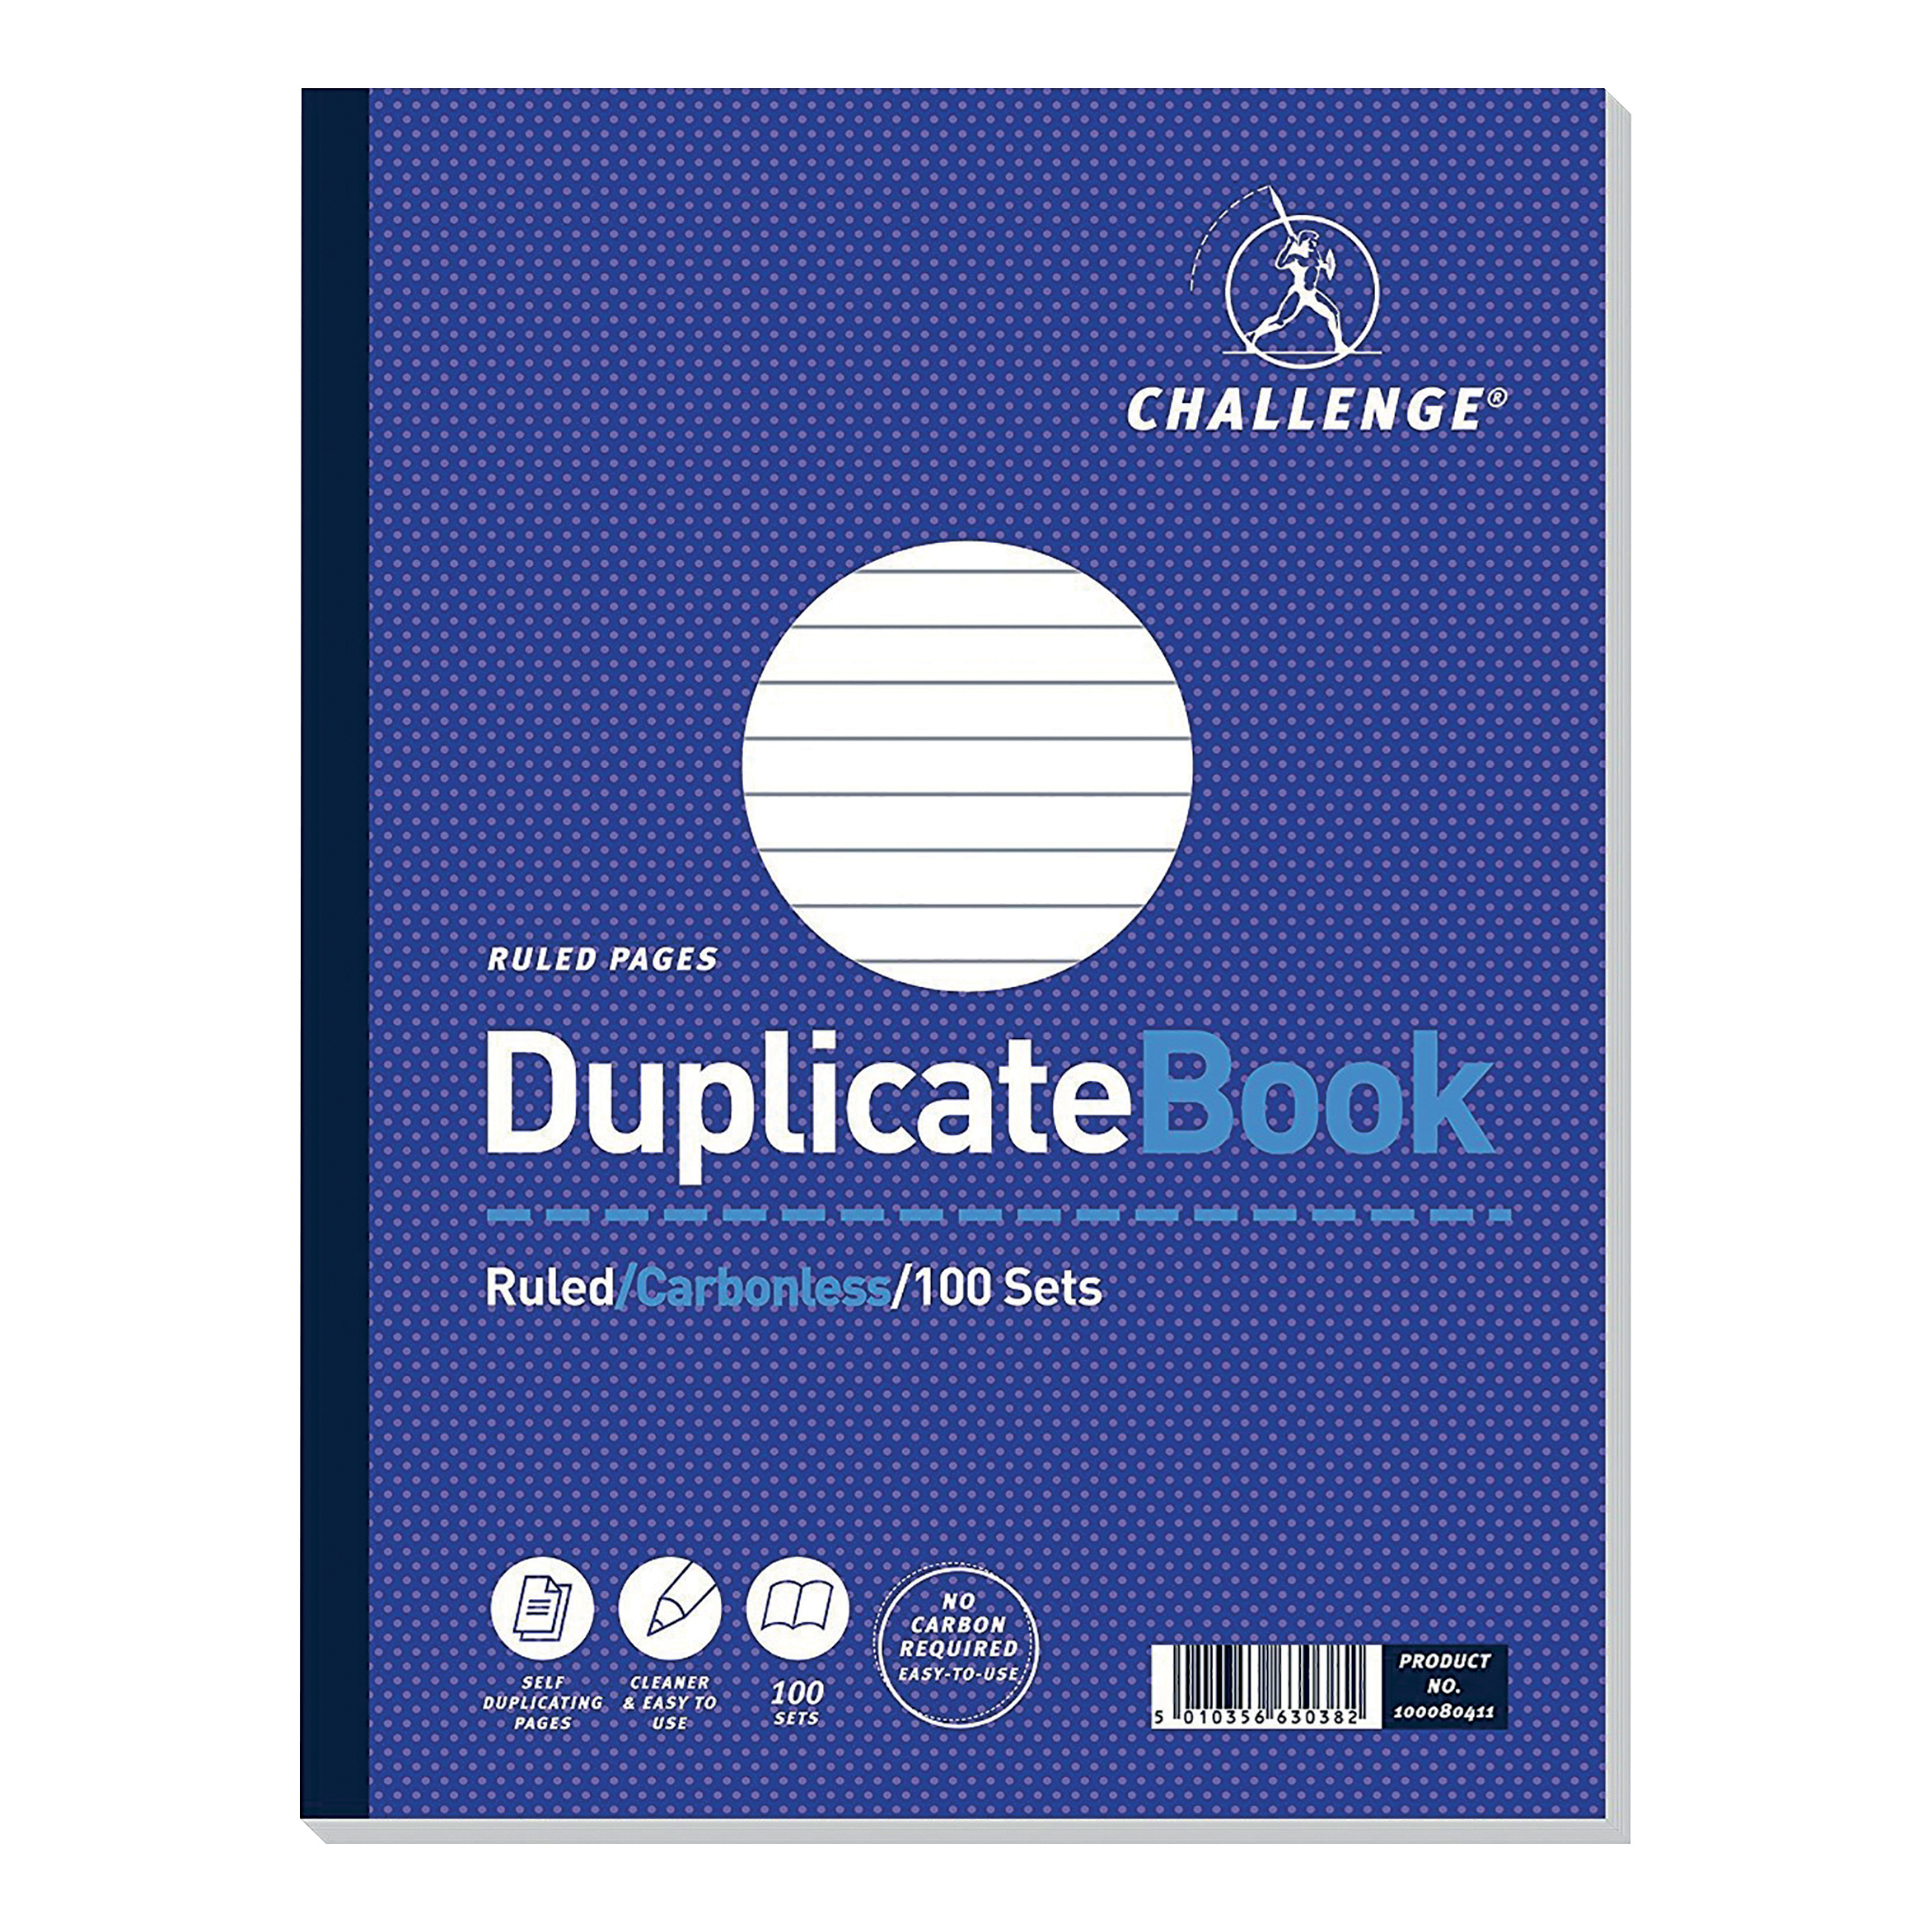 Challenge Duplicate Book Carbonless Ruled 100 Sets 248x187mm Ref 100080411 Pack 3